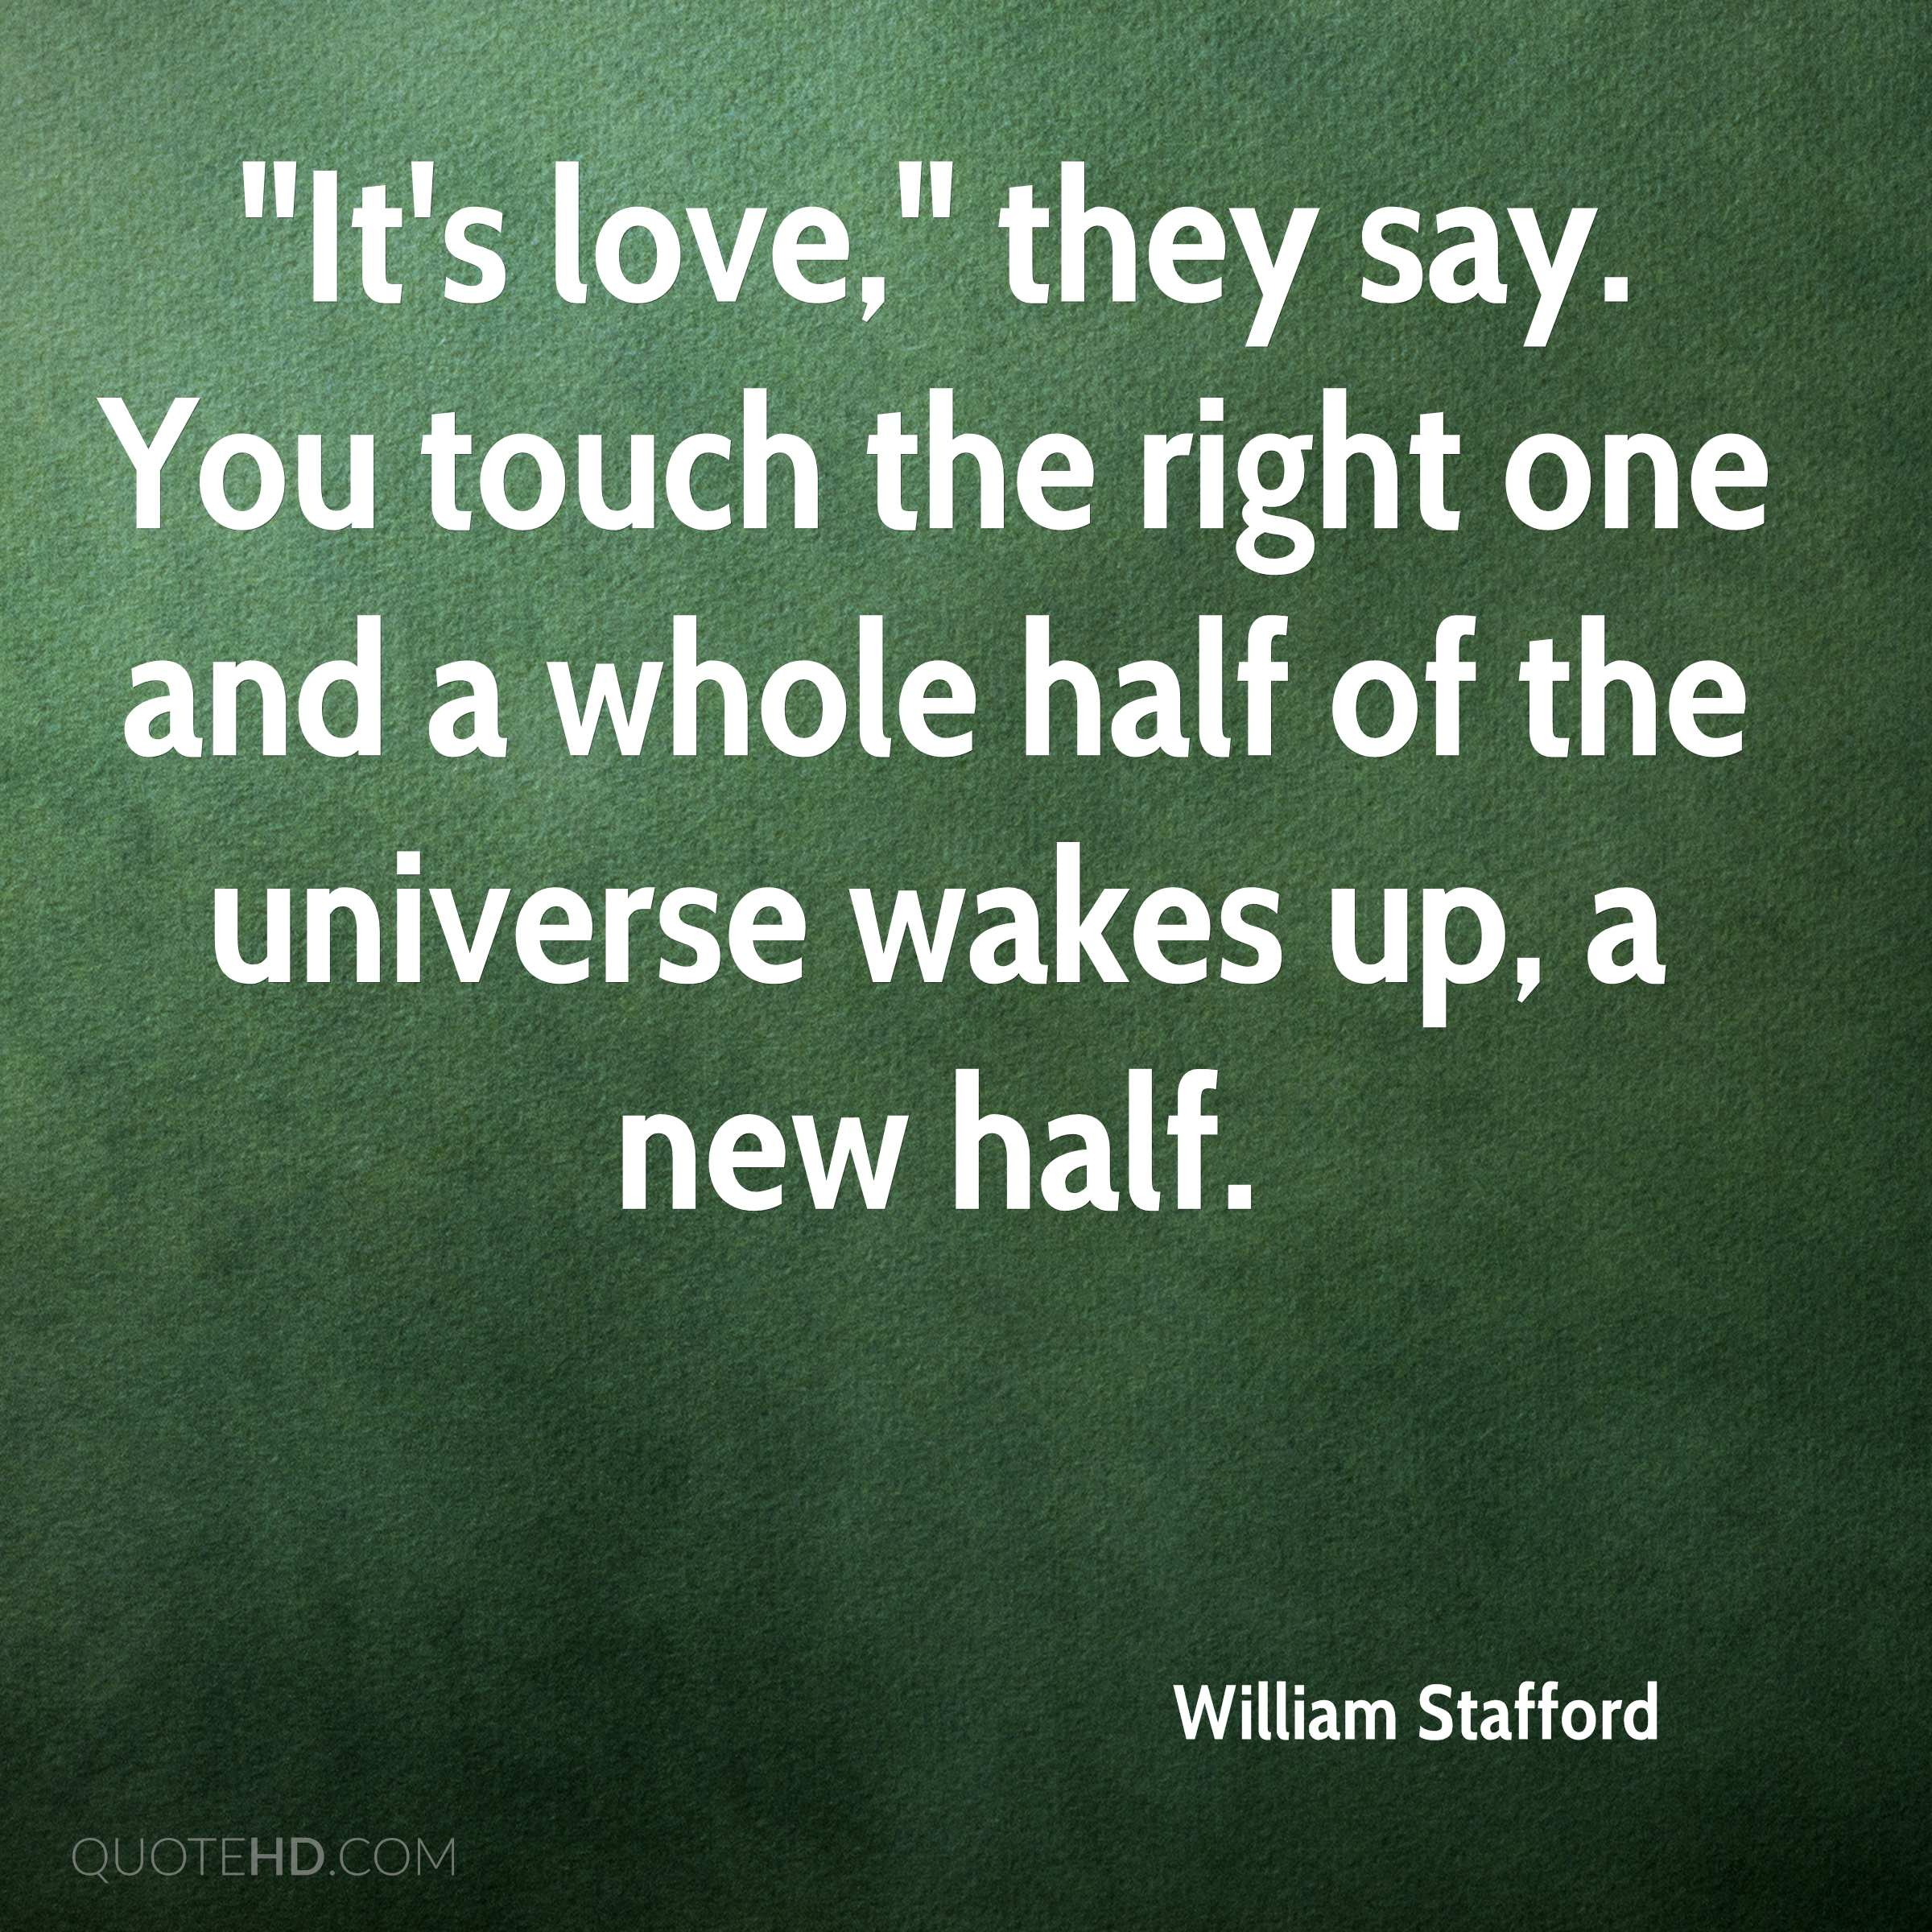 """It's love,"" they say. You touch the right one and a whole half of the universe wakes up, a new half."